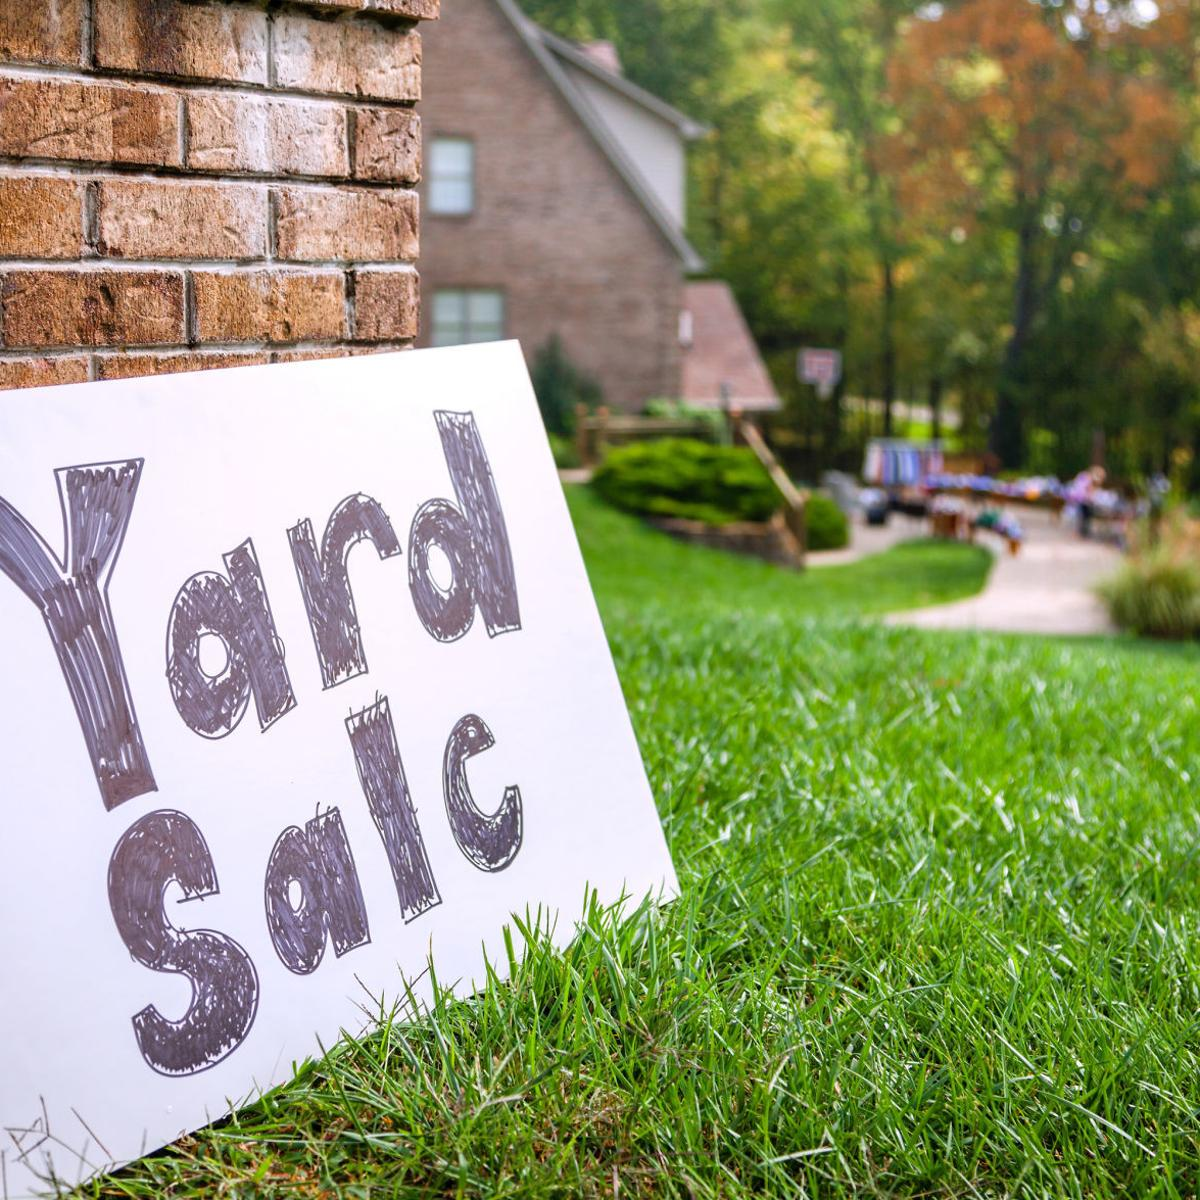 Beyond Craigslist: Three easy ways to sell your stuff online